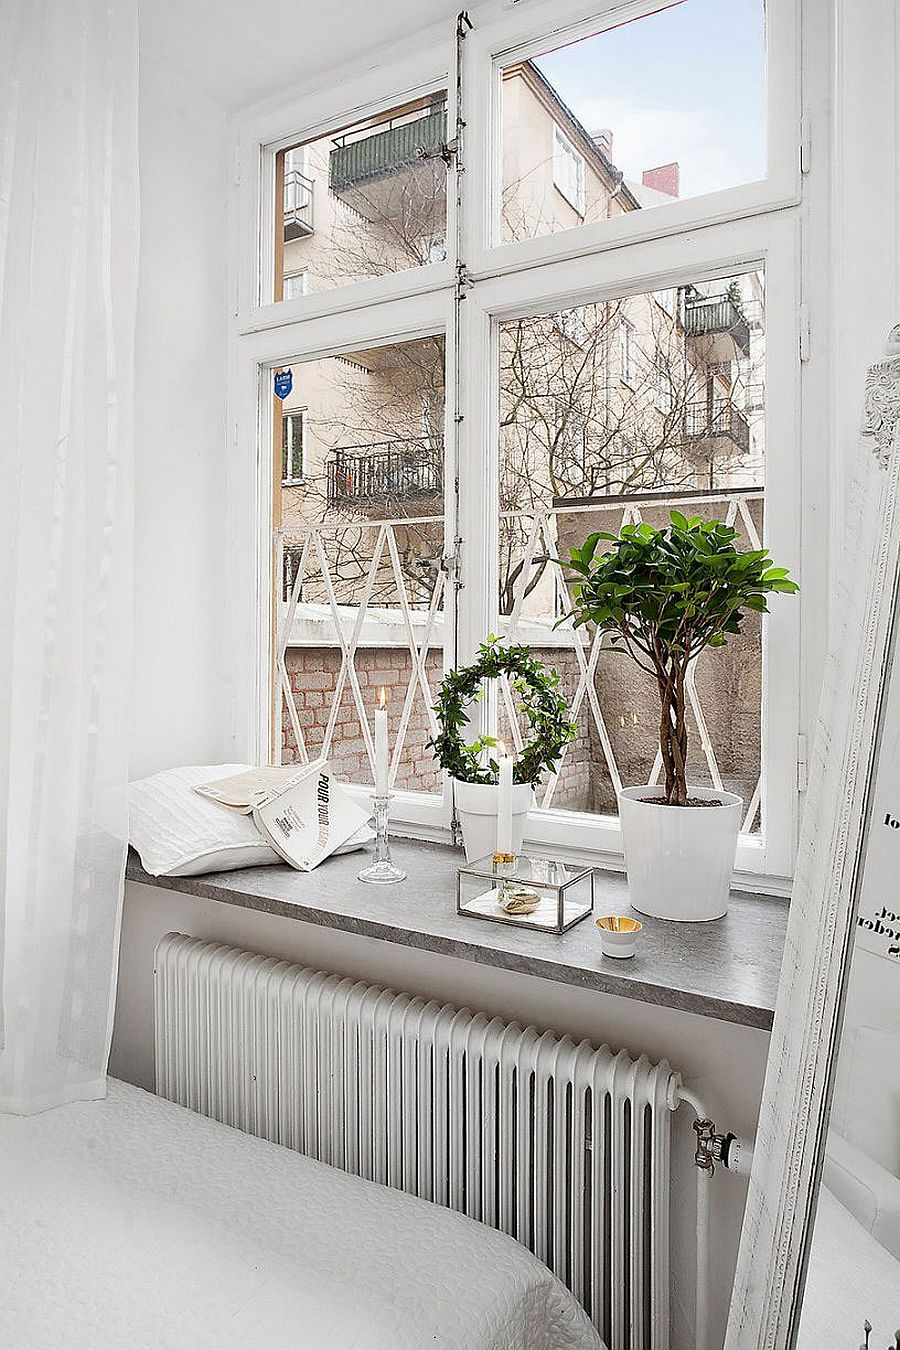 Interesting way to turn the window sill into a smart shelf!